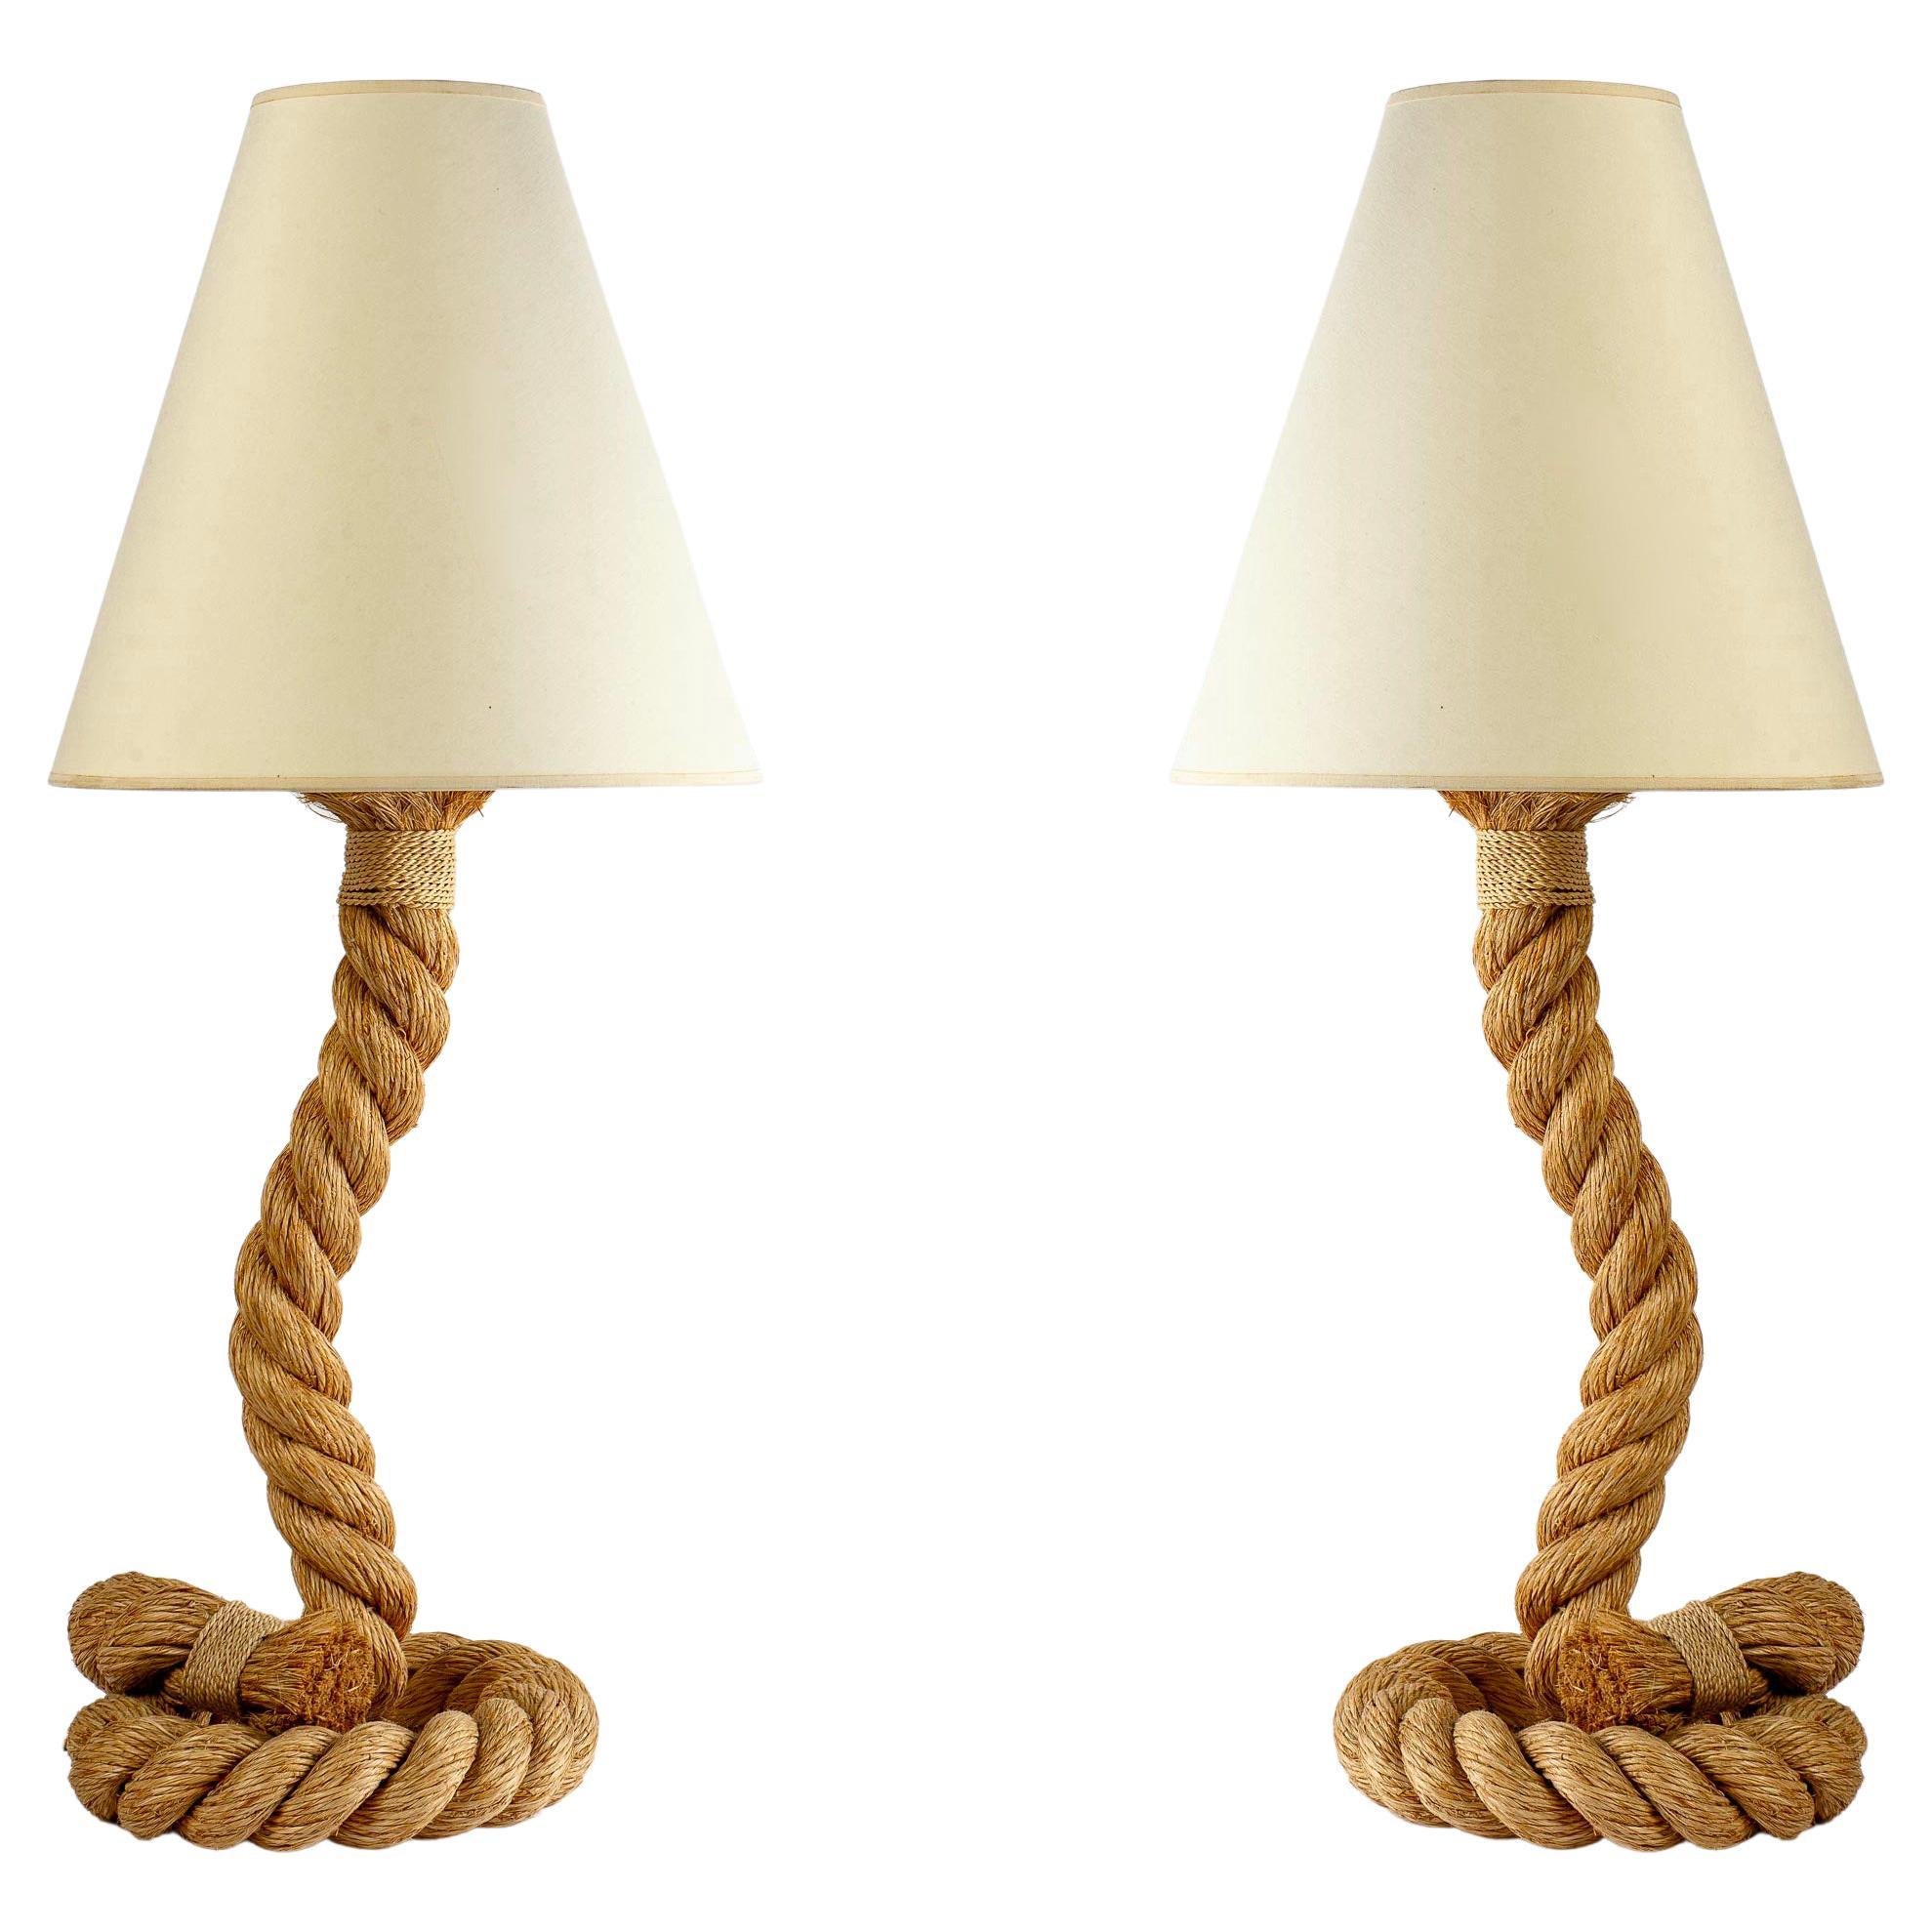 1950s Pair of Large Audoux and Minet Rope Lamps